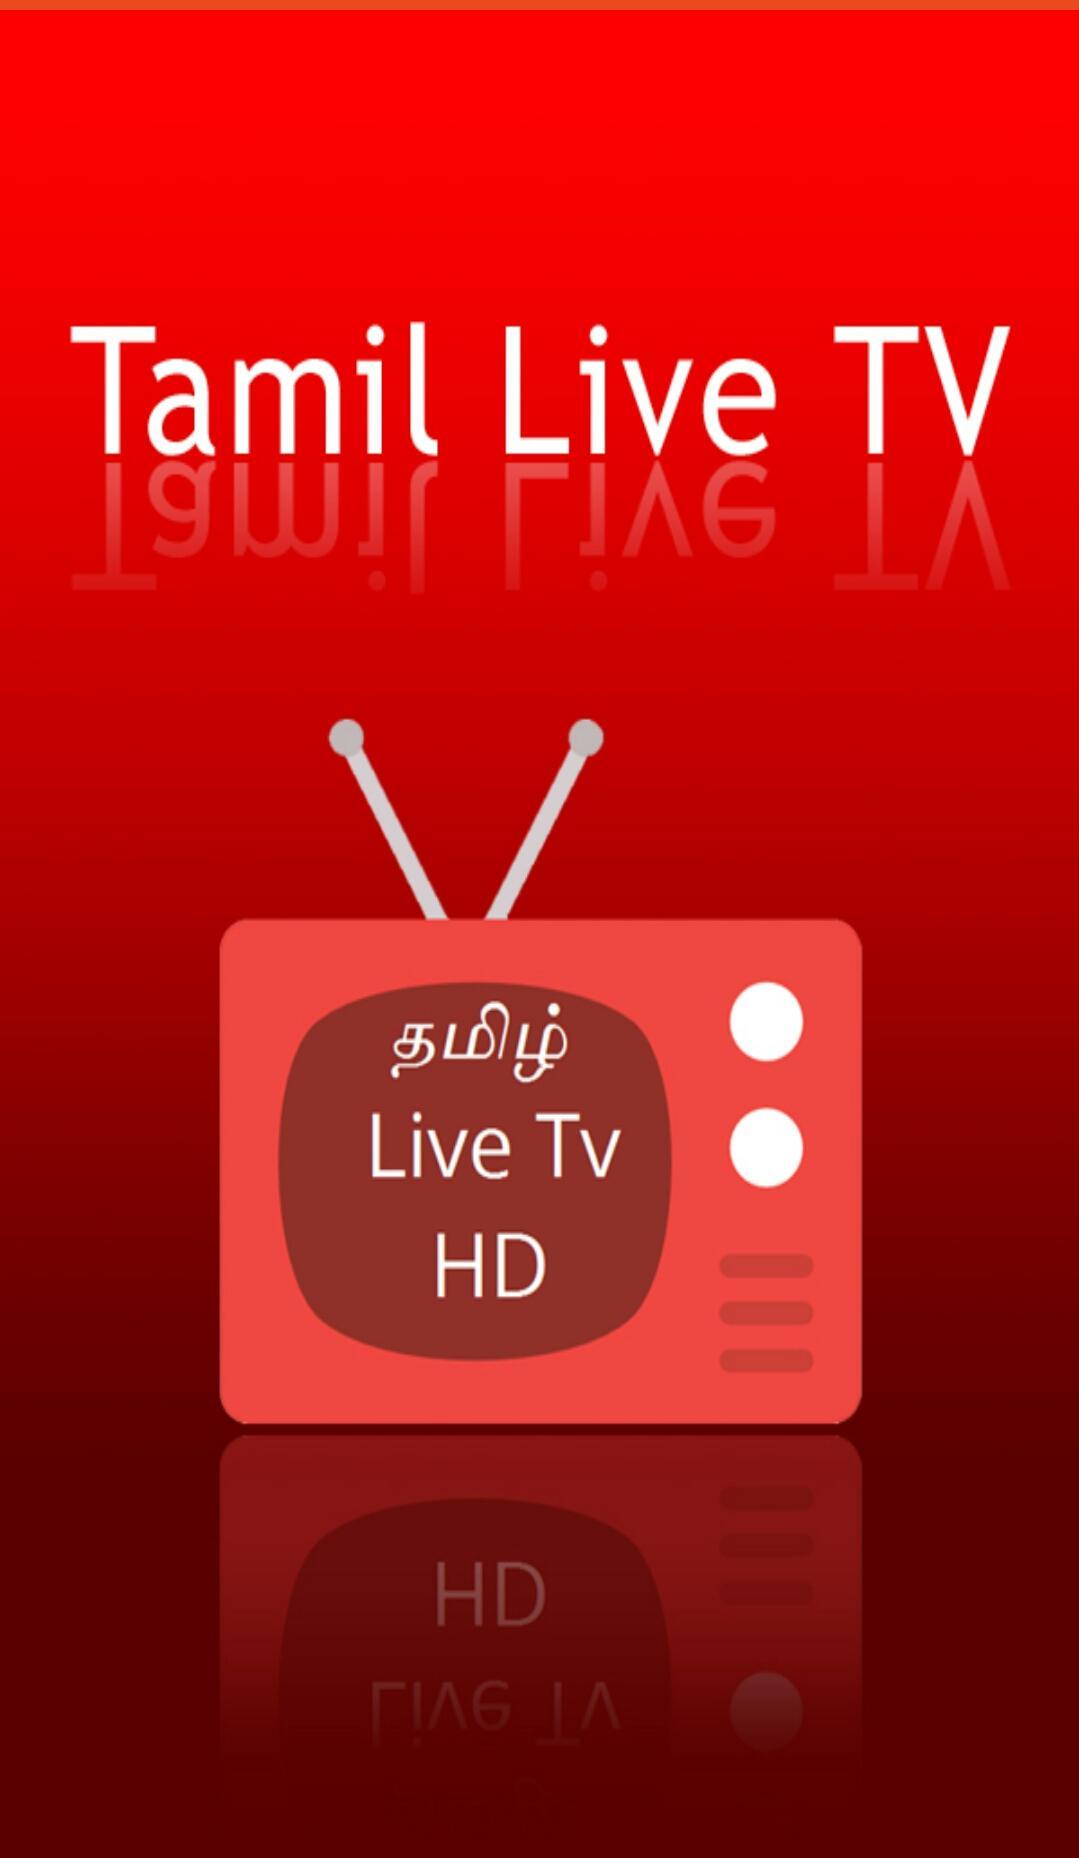 Tamil Live TV Channel App for Android - APK Download